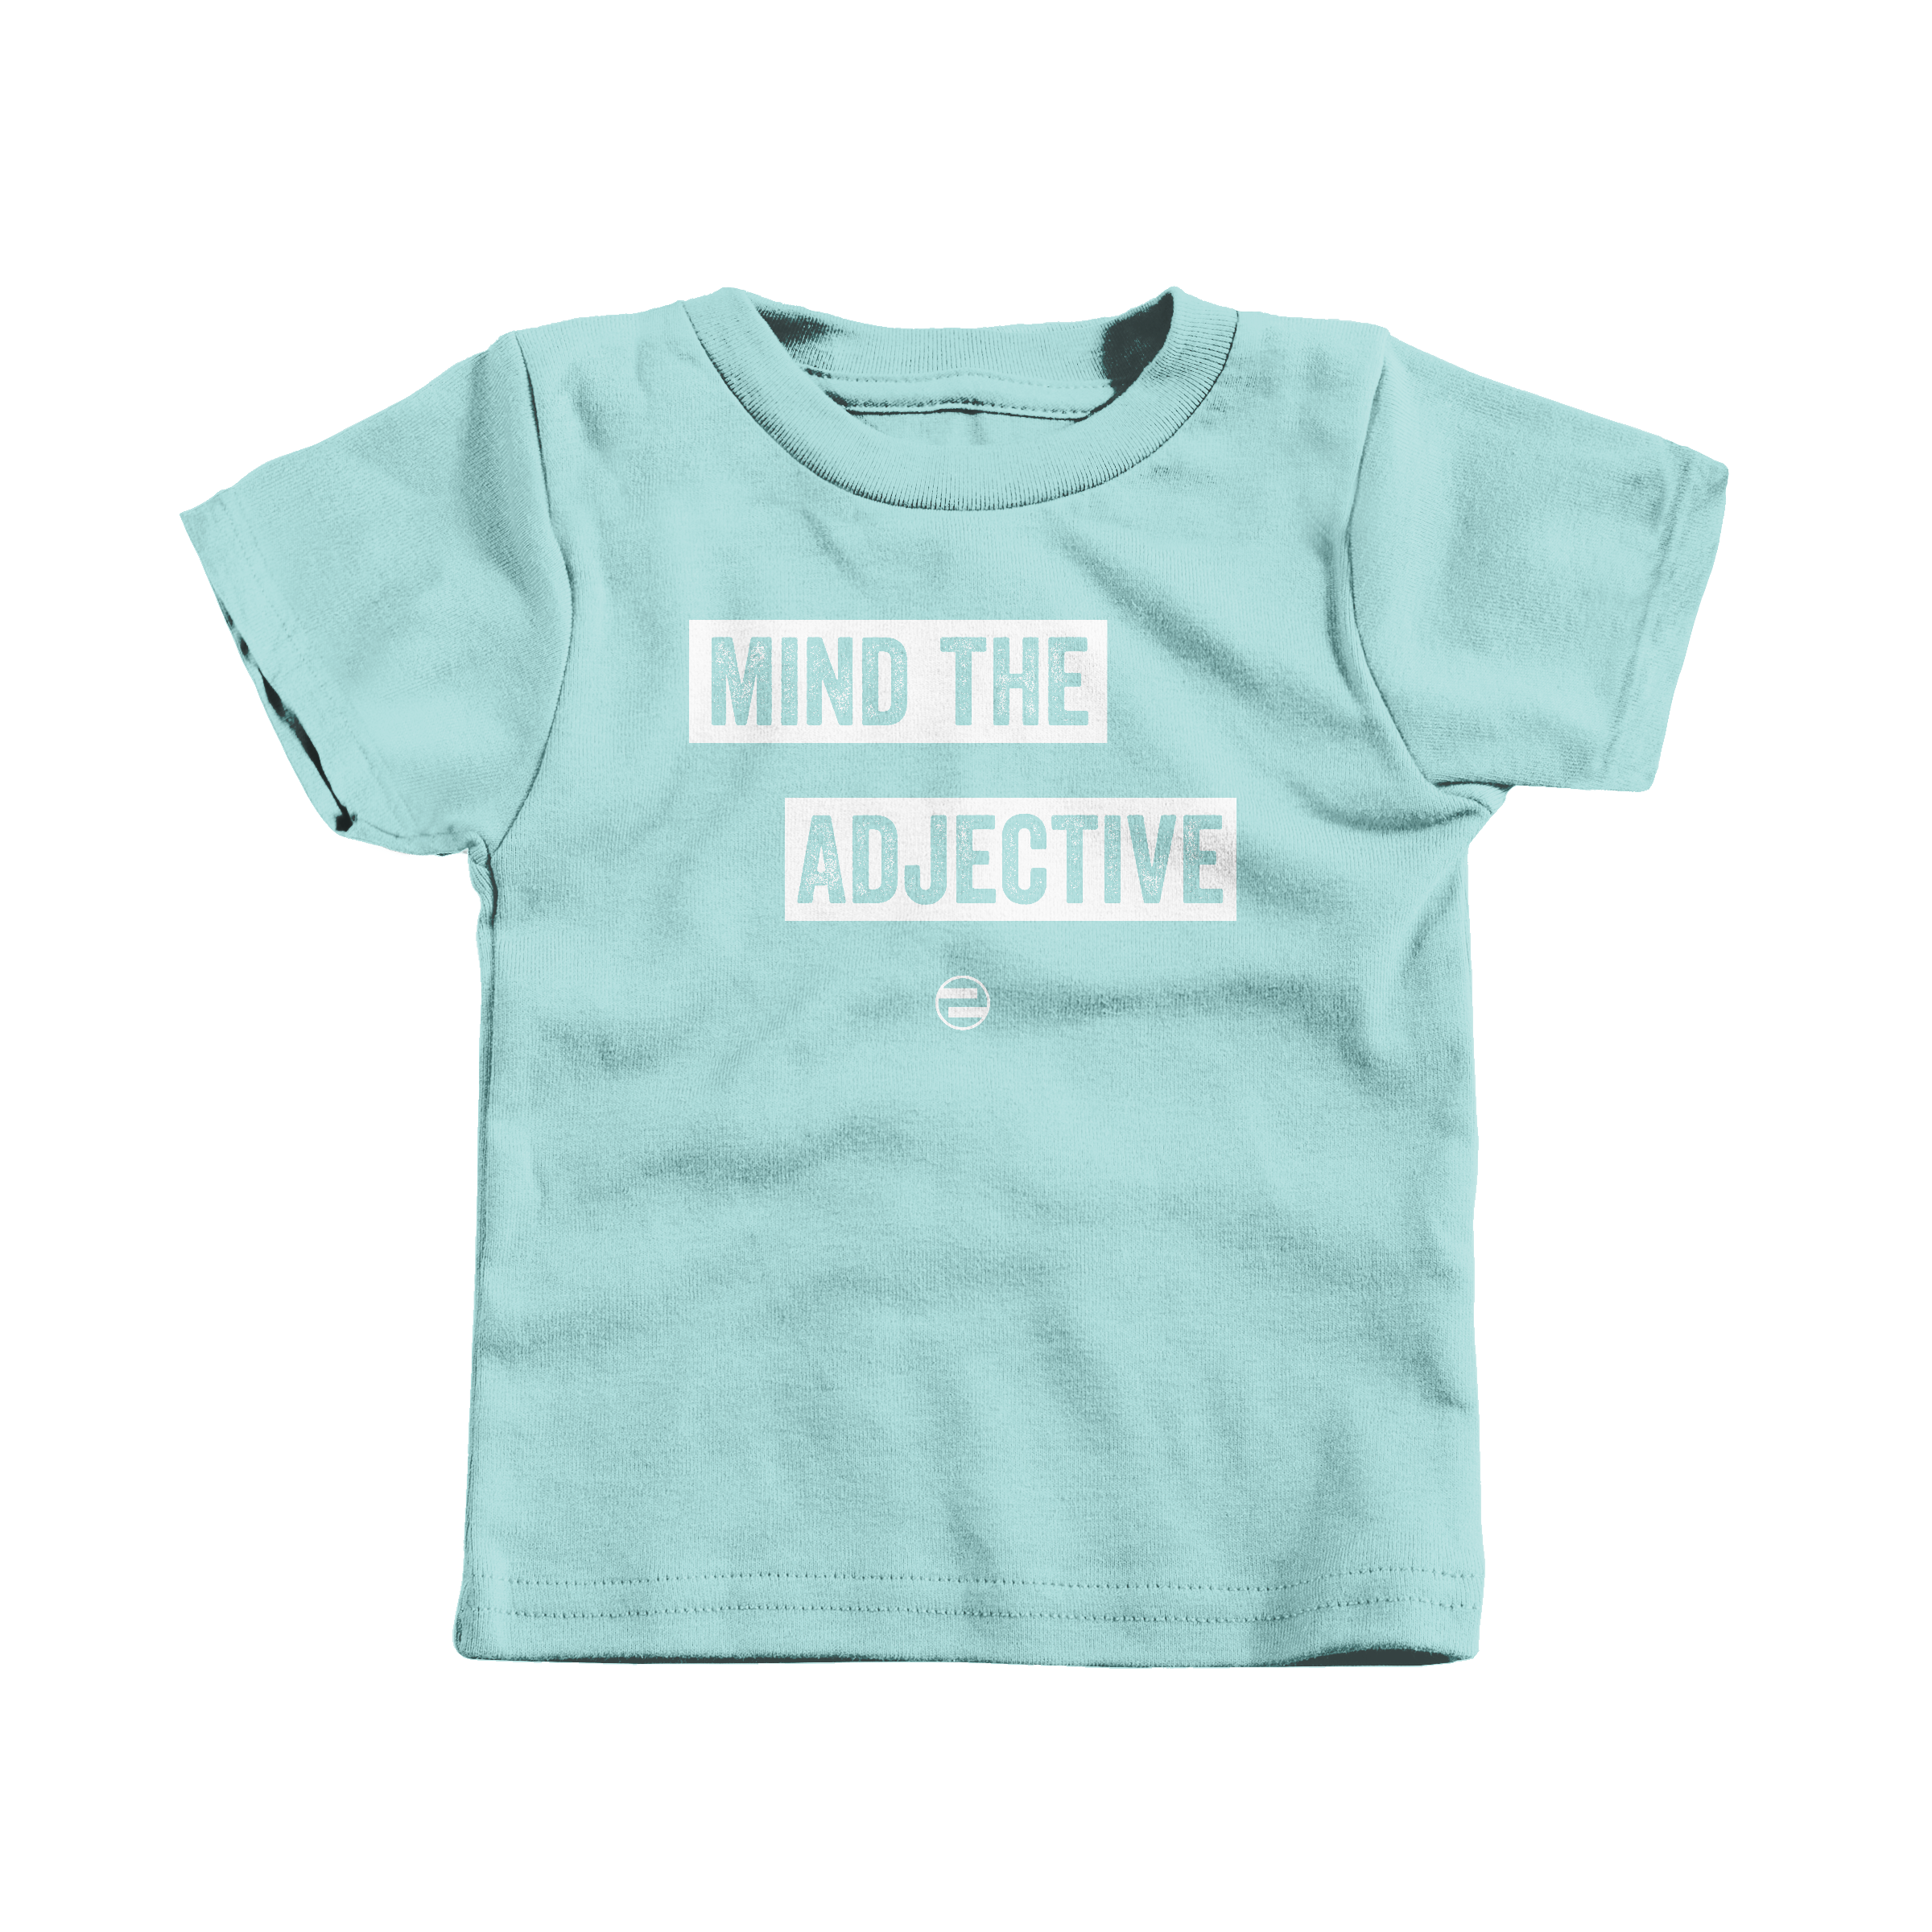 """GenEquality """"Mind the Adjective"""" Kids Tee & Onesie Chill (T-Shirt)"""